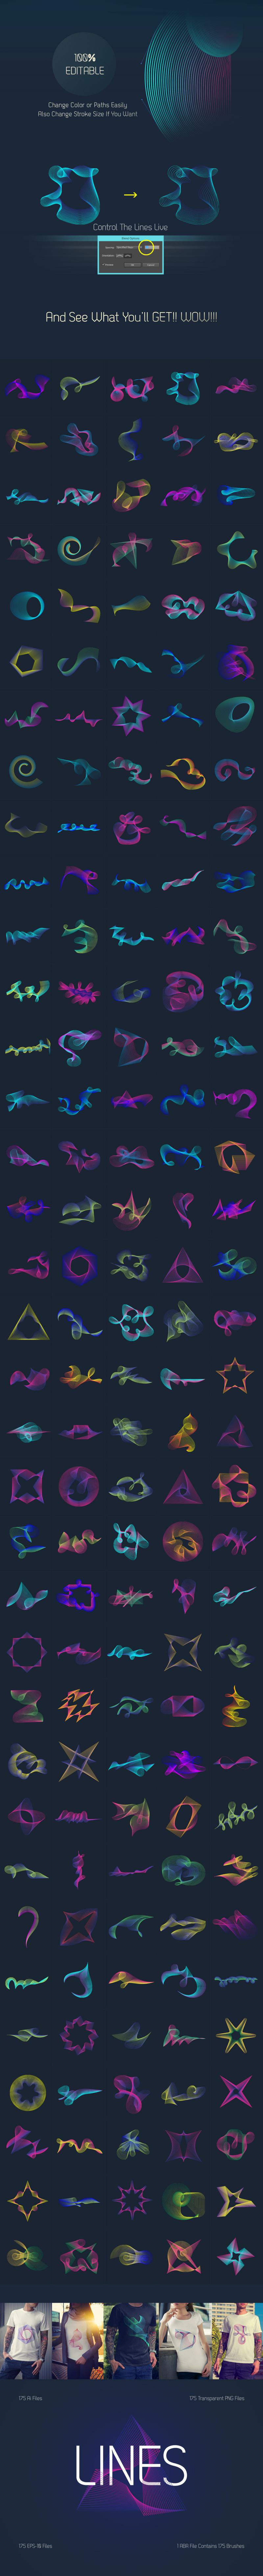 Abstract Line Art – 170+ Vector Elements Pack